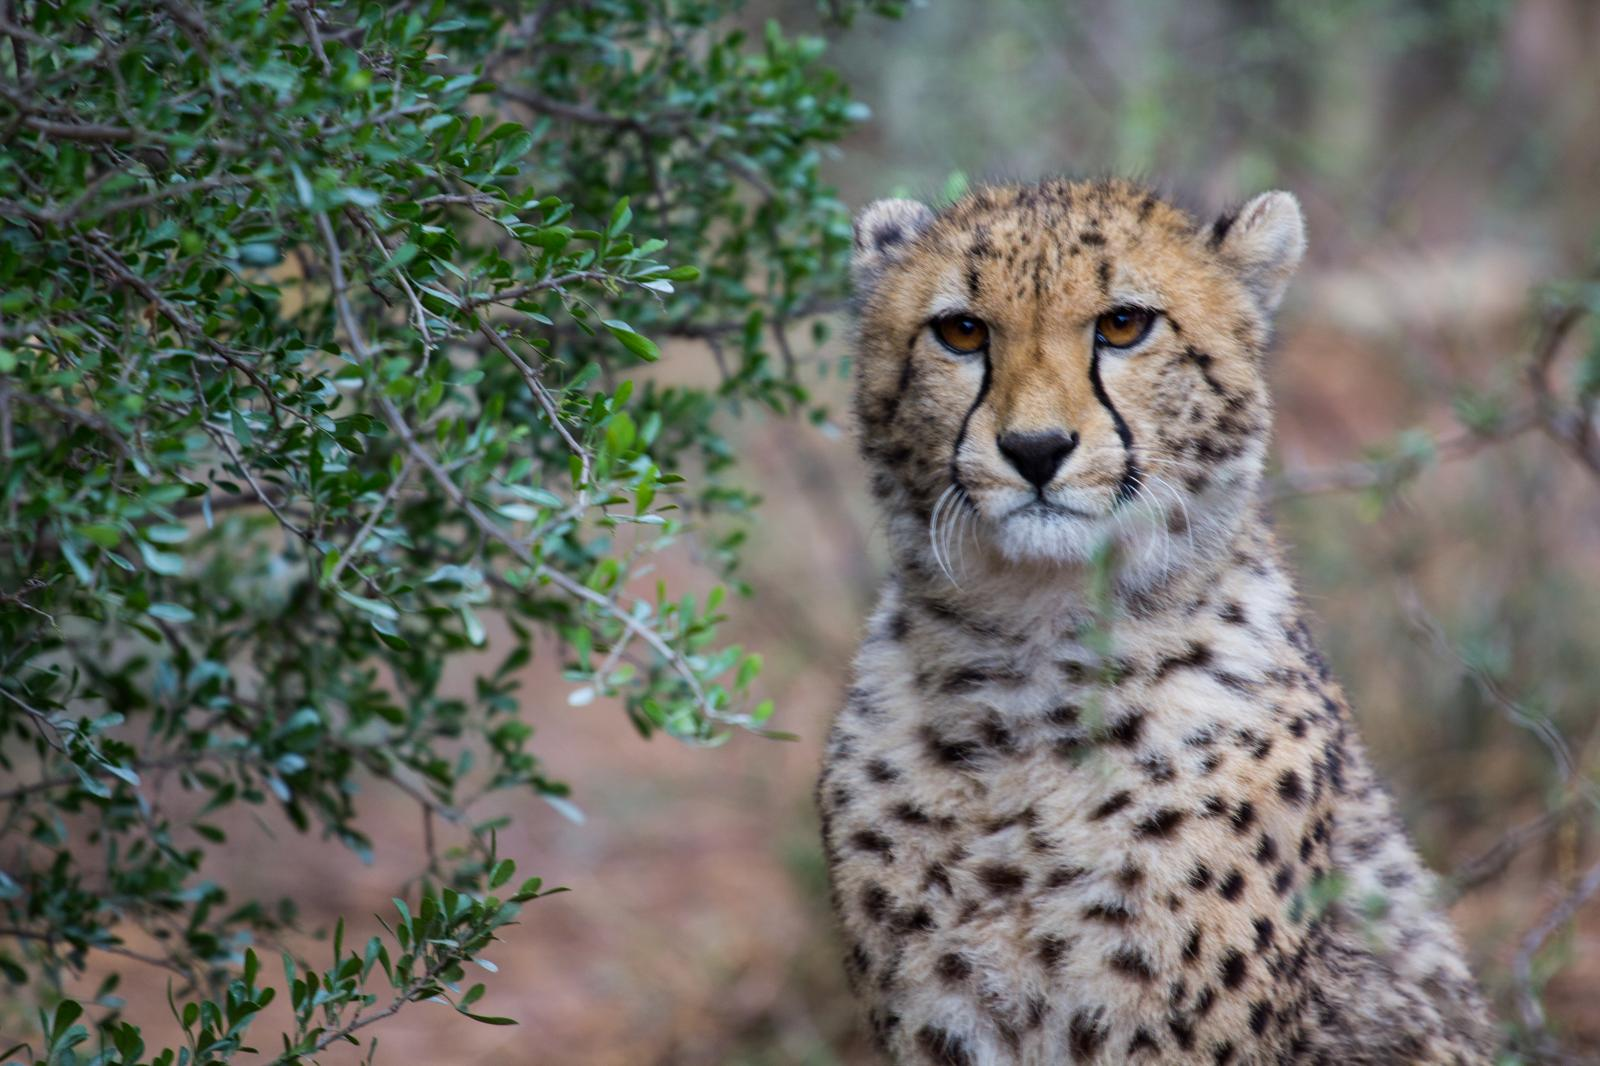 Cheetah cub on Mount Camdeboo's wildlife reserve located in South Africa.